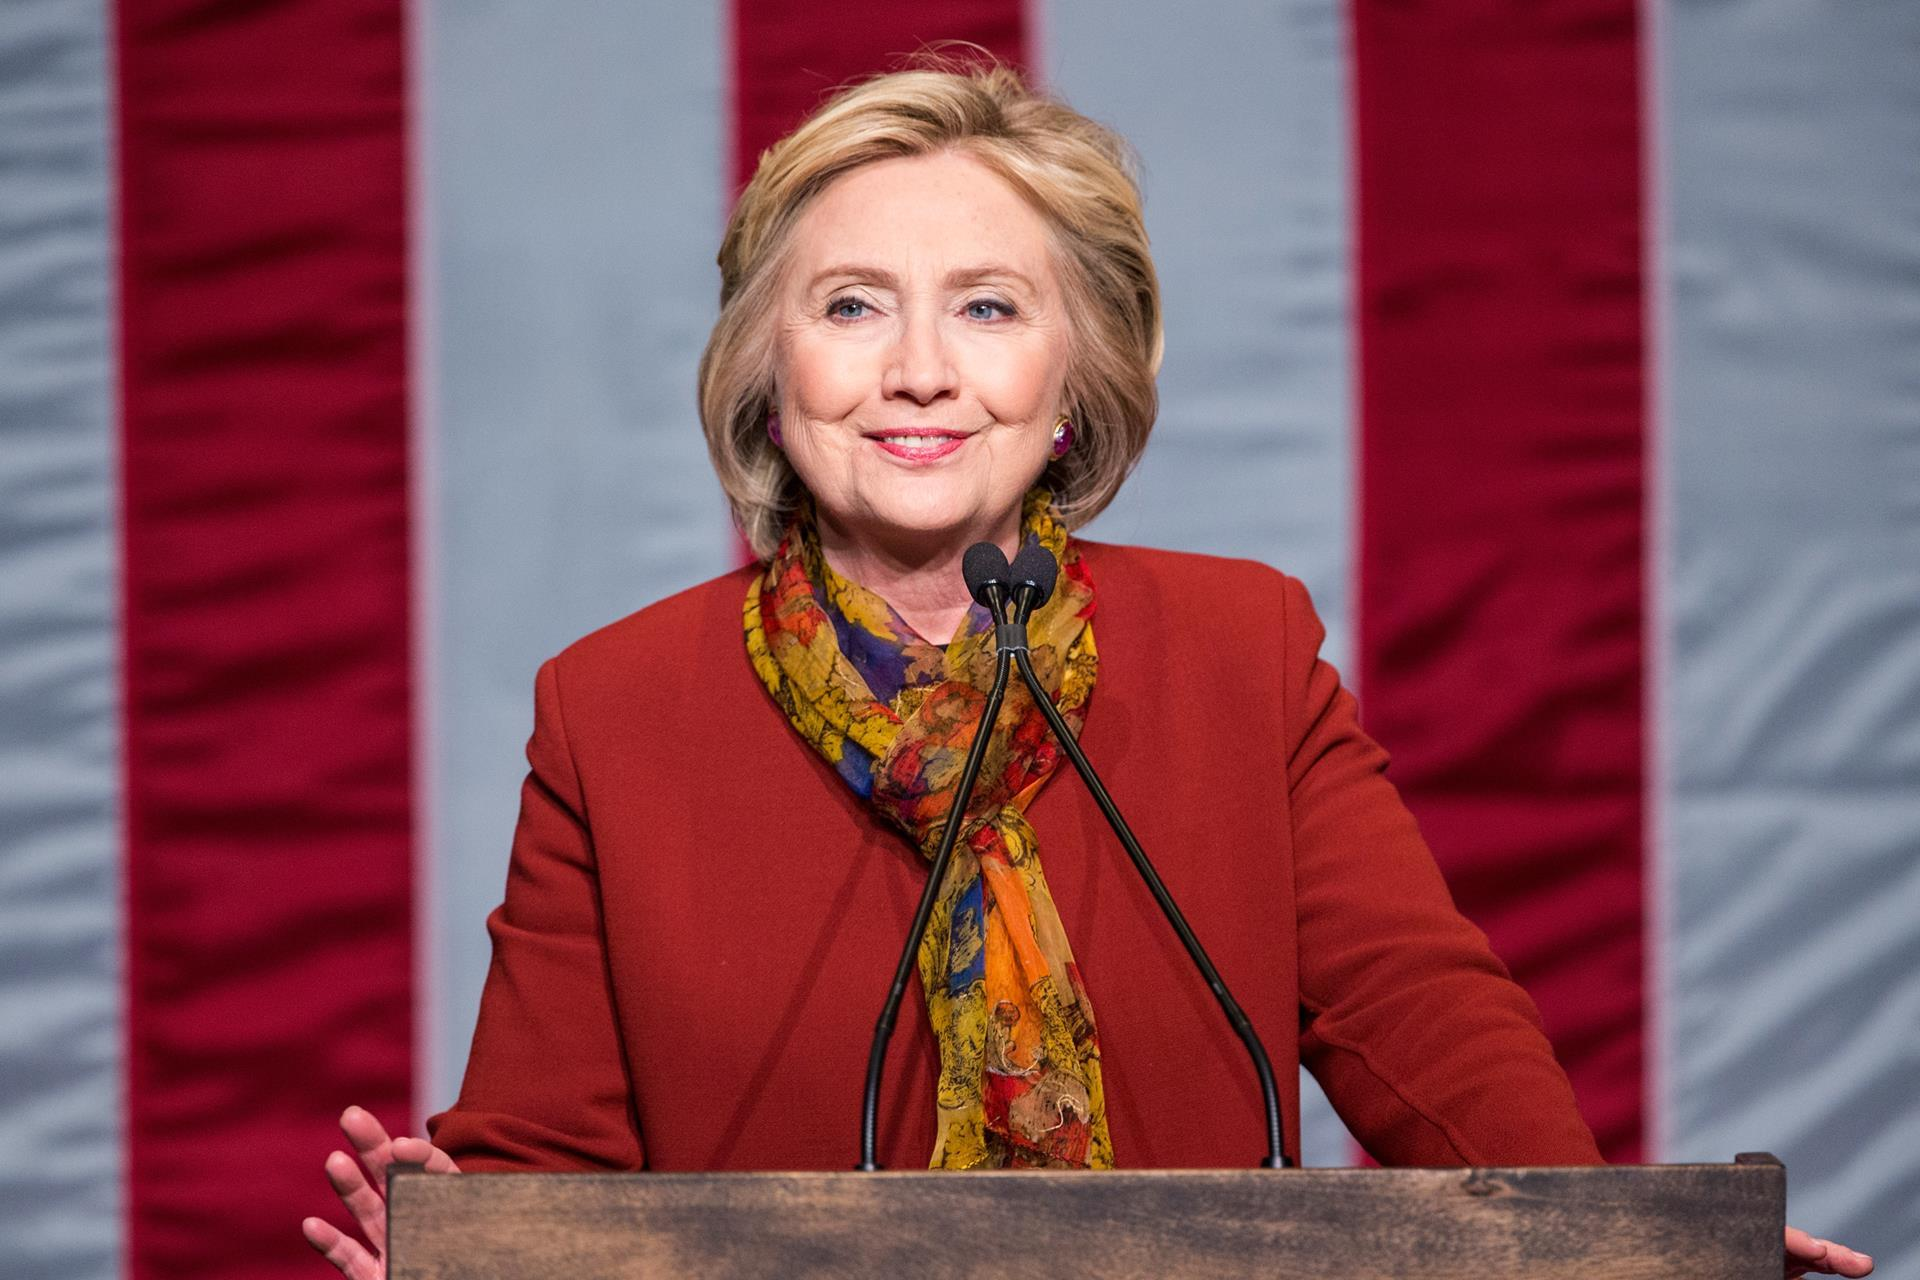 hillary clinton phd thesis Essay on hillary clinton help with my  to do my the human cloning study economics paper writing essay pay for my cheap dissertation methodology hillary's biographies and the thesis on security alarm system books about both hillary and bill also striving for black equality in changing times.